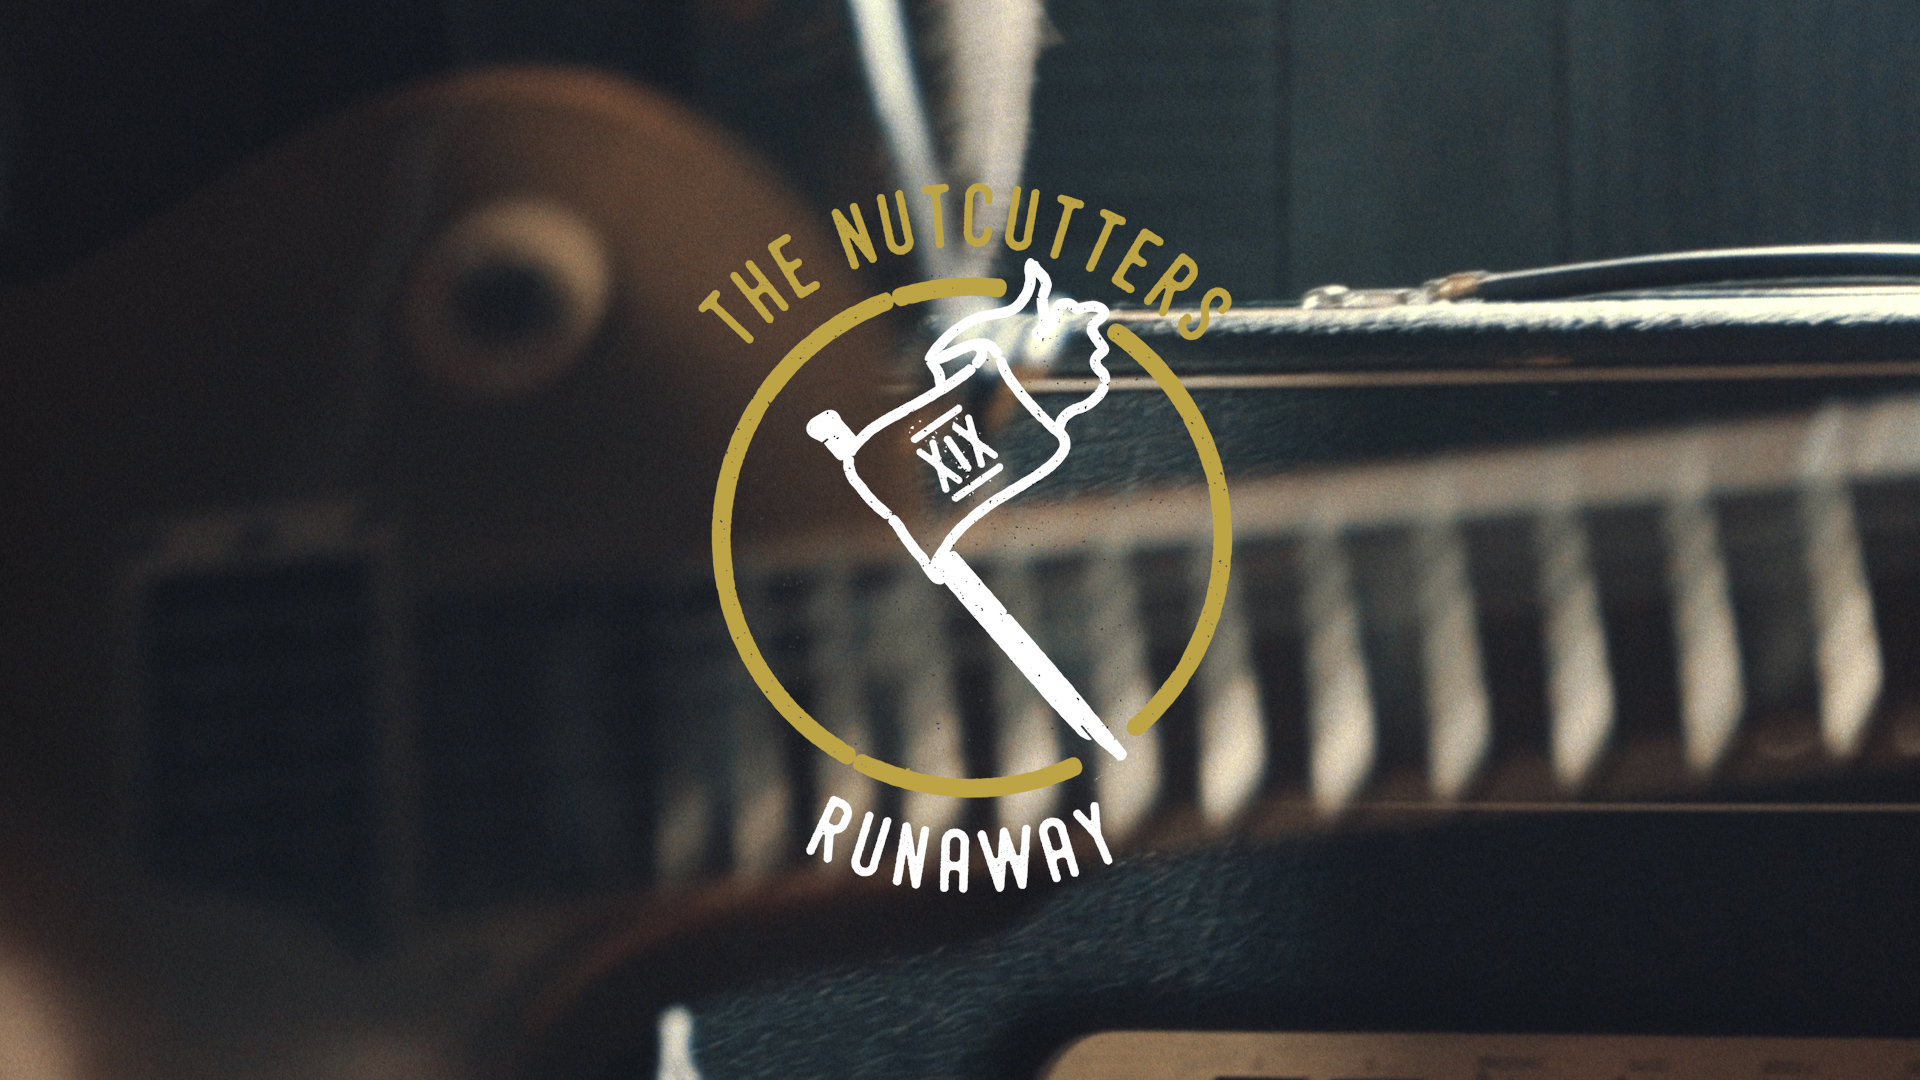 THE NUTCUTTERS - RUNAWAY (Official) -